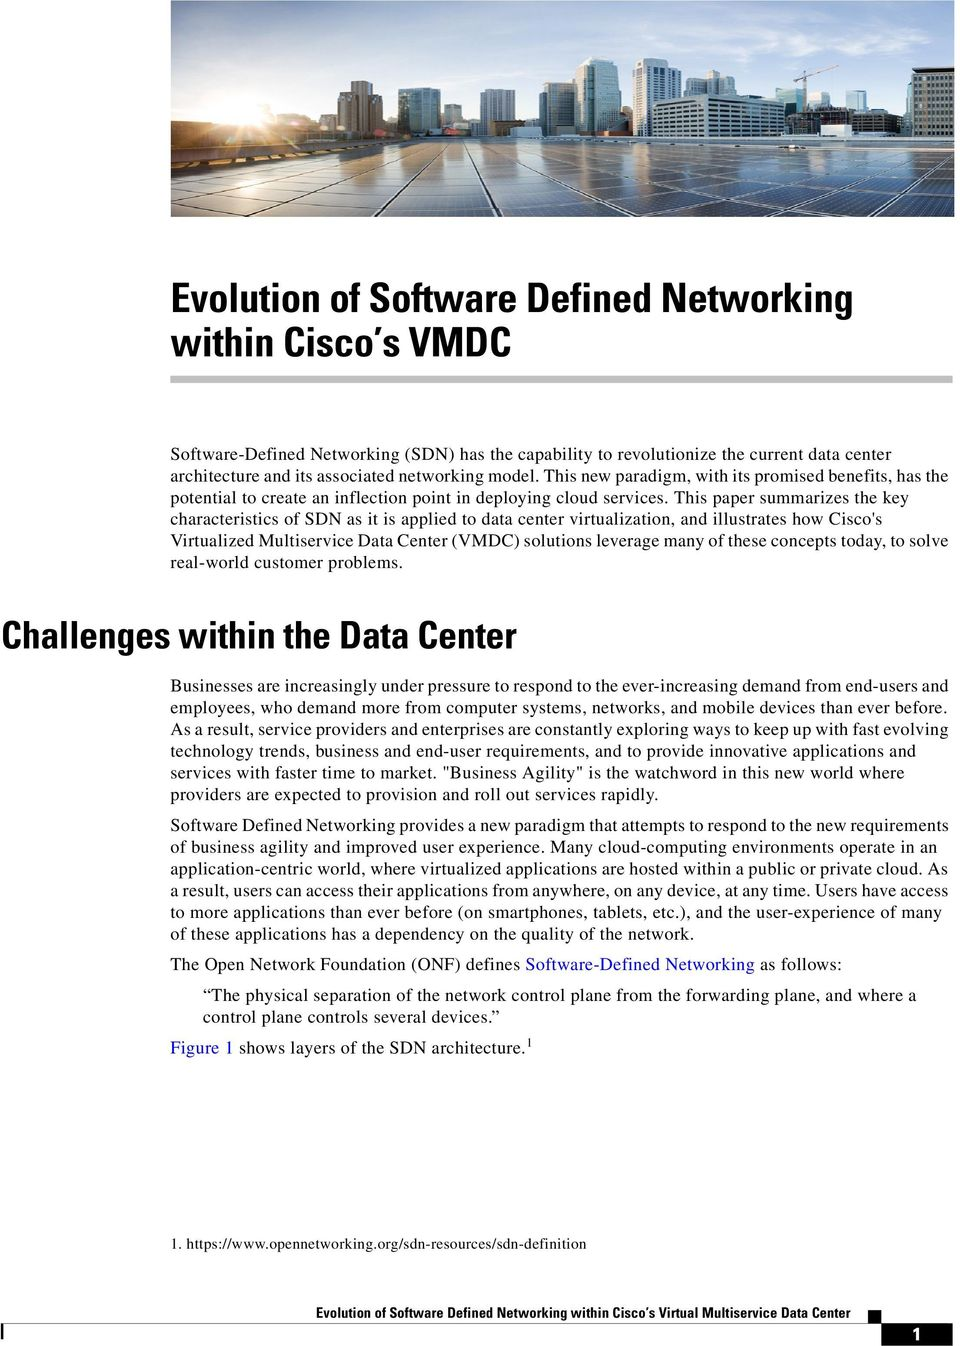 This paper summarizes the key characteristics of SDN as it is applied to data center virtualization, and illustrates how Cisco's Virtualized Multiservice Data Center (VMDC) solutions leverage many of